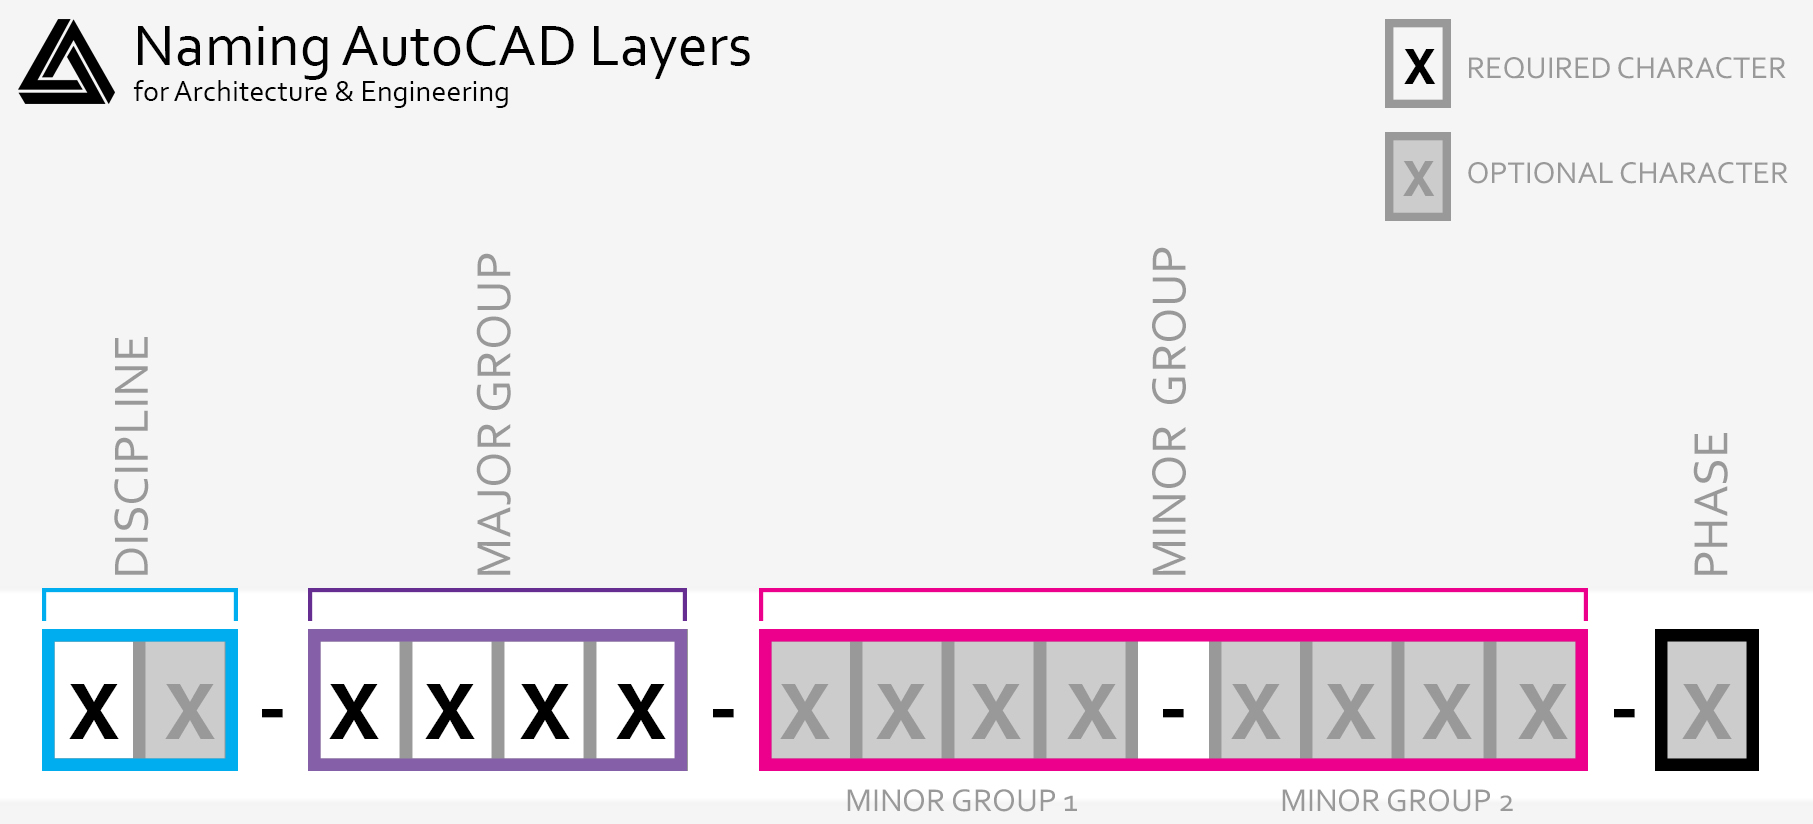 How to Organize Your AutoCAD Layers for Buildings